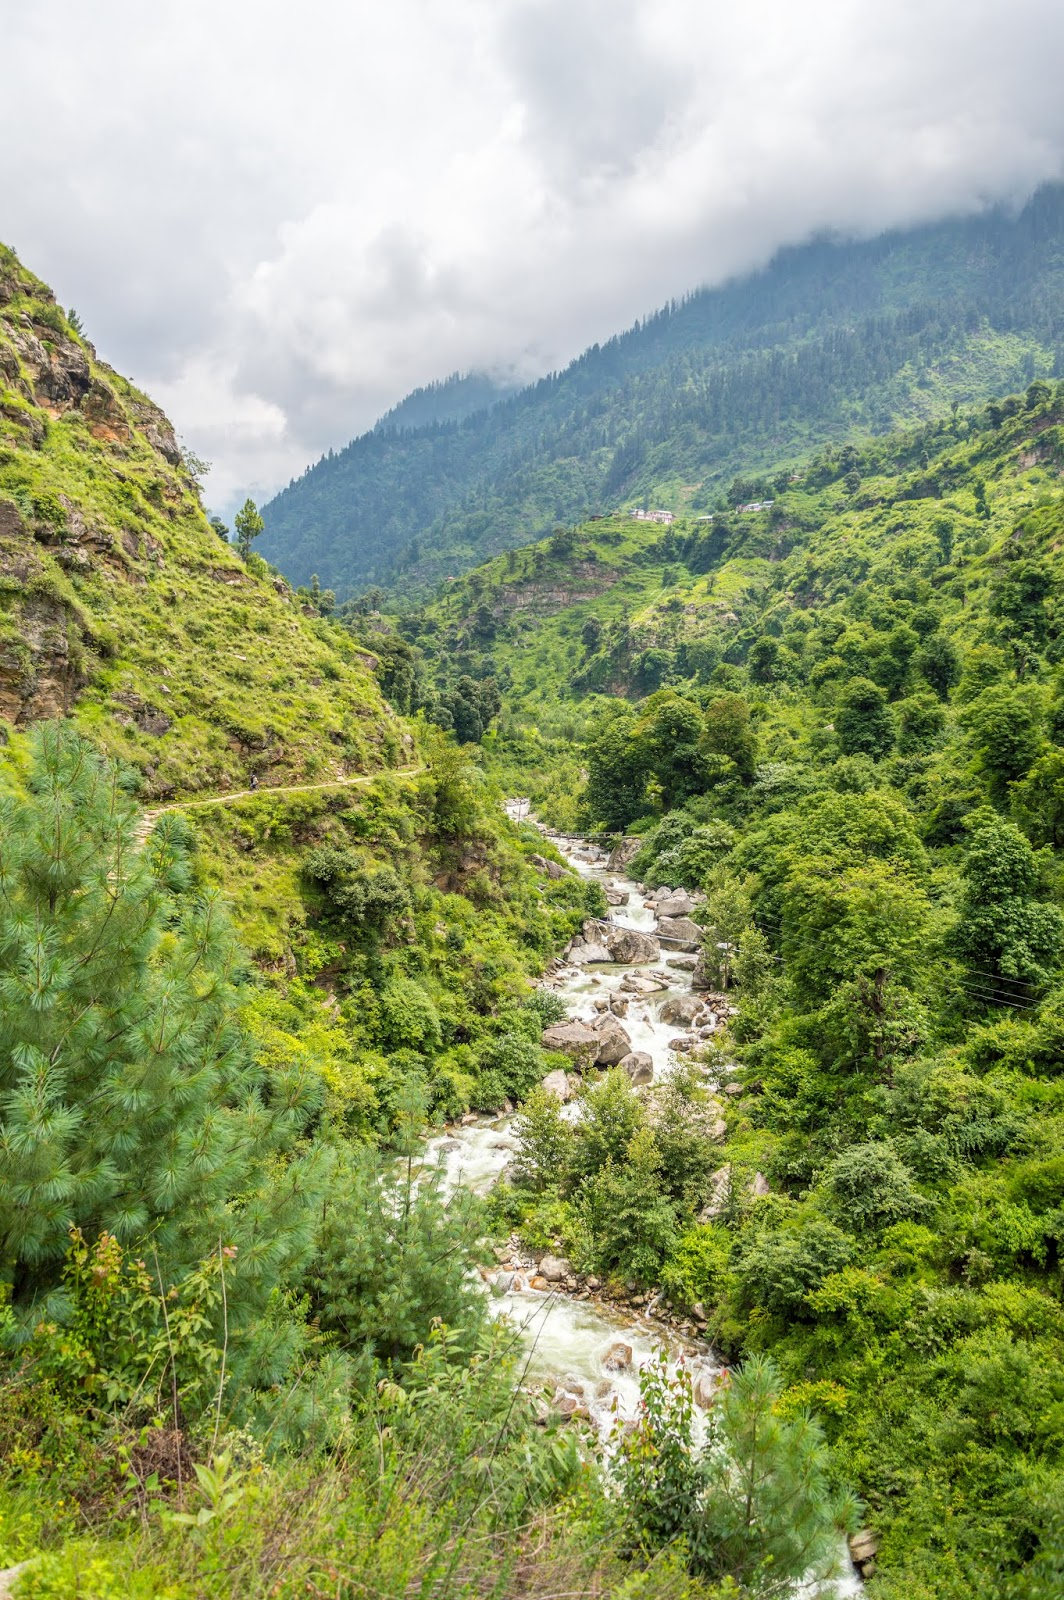 Lush green valley with a flowing river alongside on the start of Srikhand Mahadev